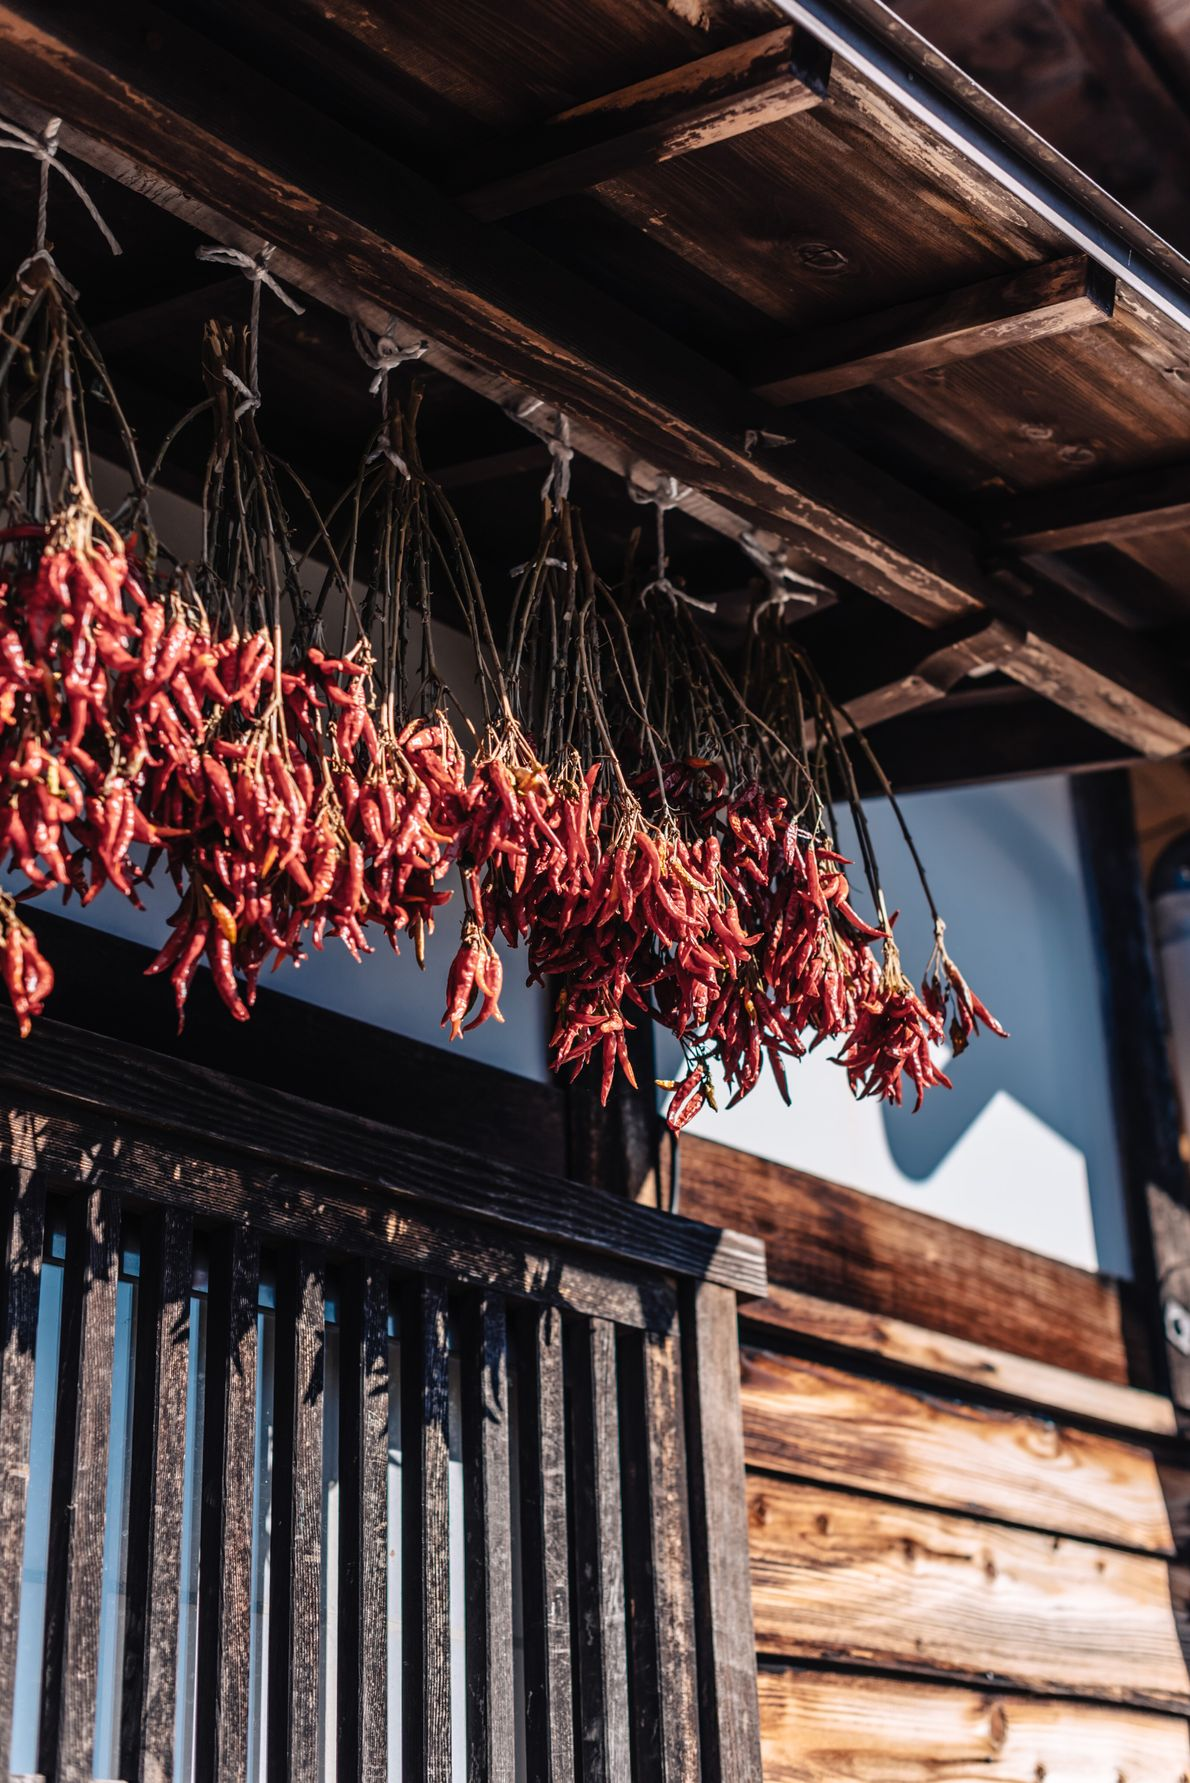 Chilli peppers hang to dry from the eaves of a house.